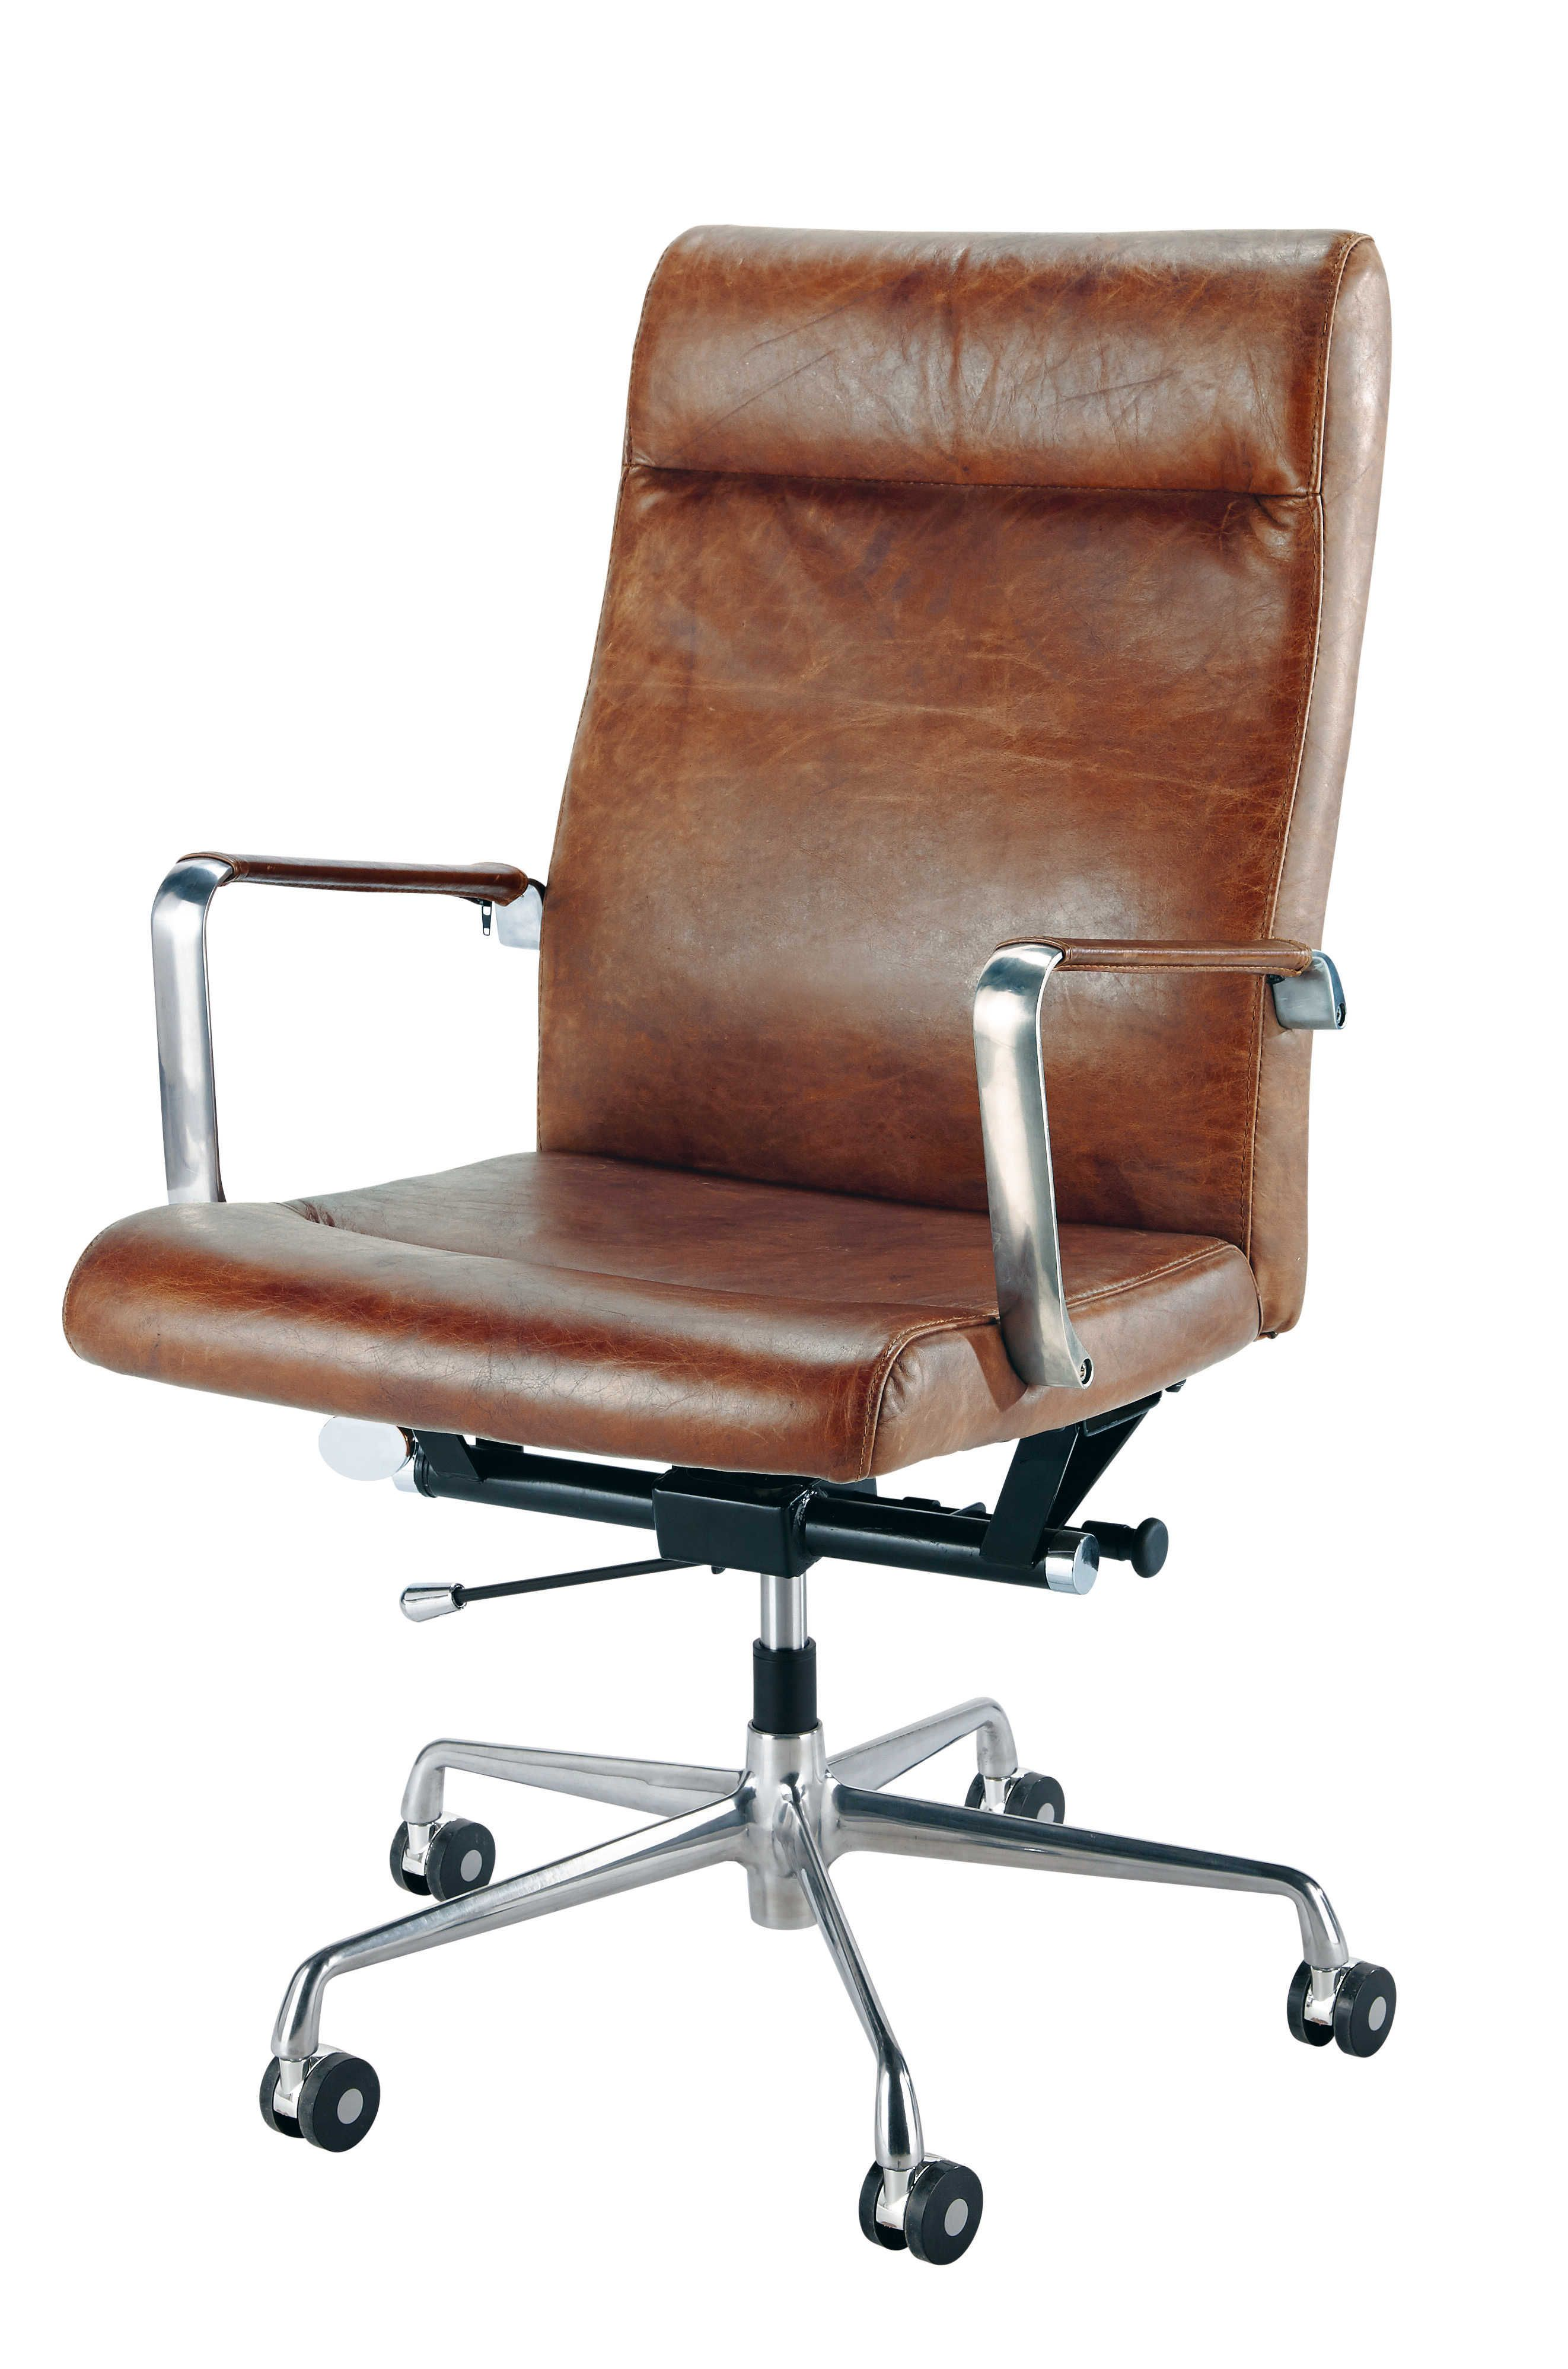 Sedia Karol Wood Brown Leather And Metal Office Chair On Wheels Home Office